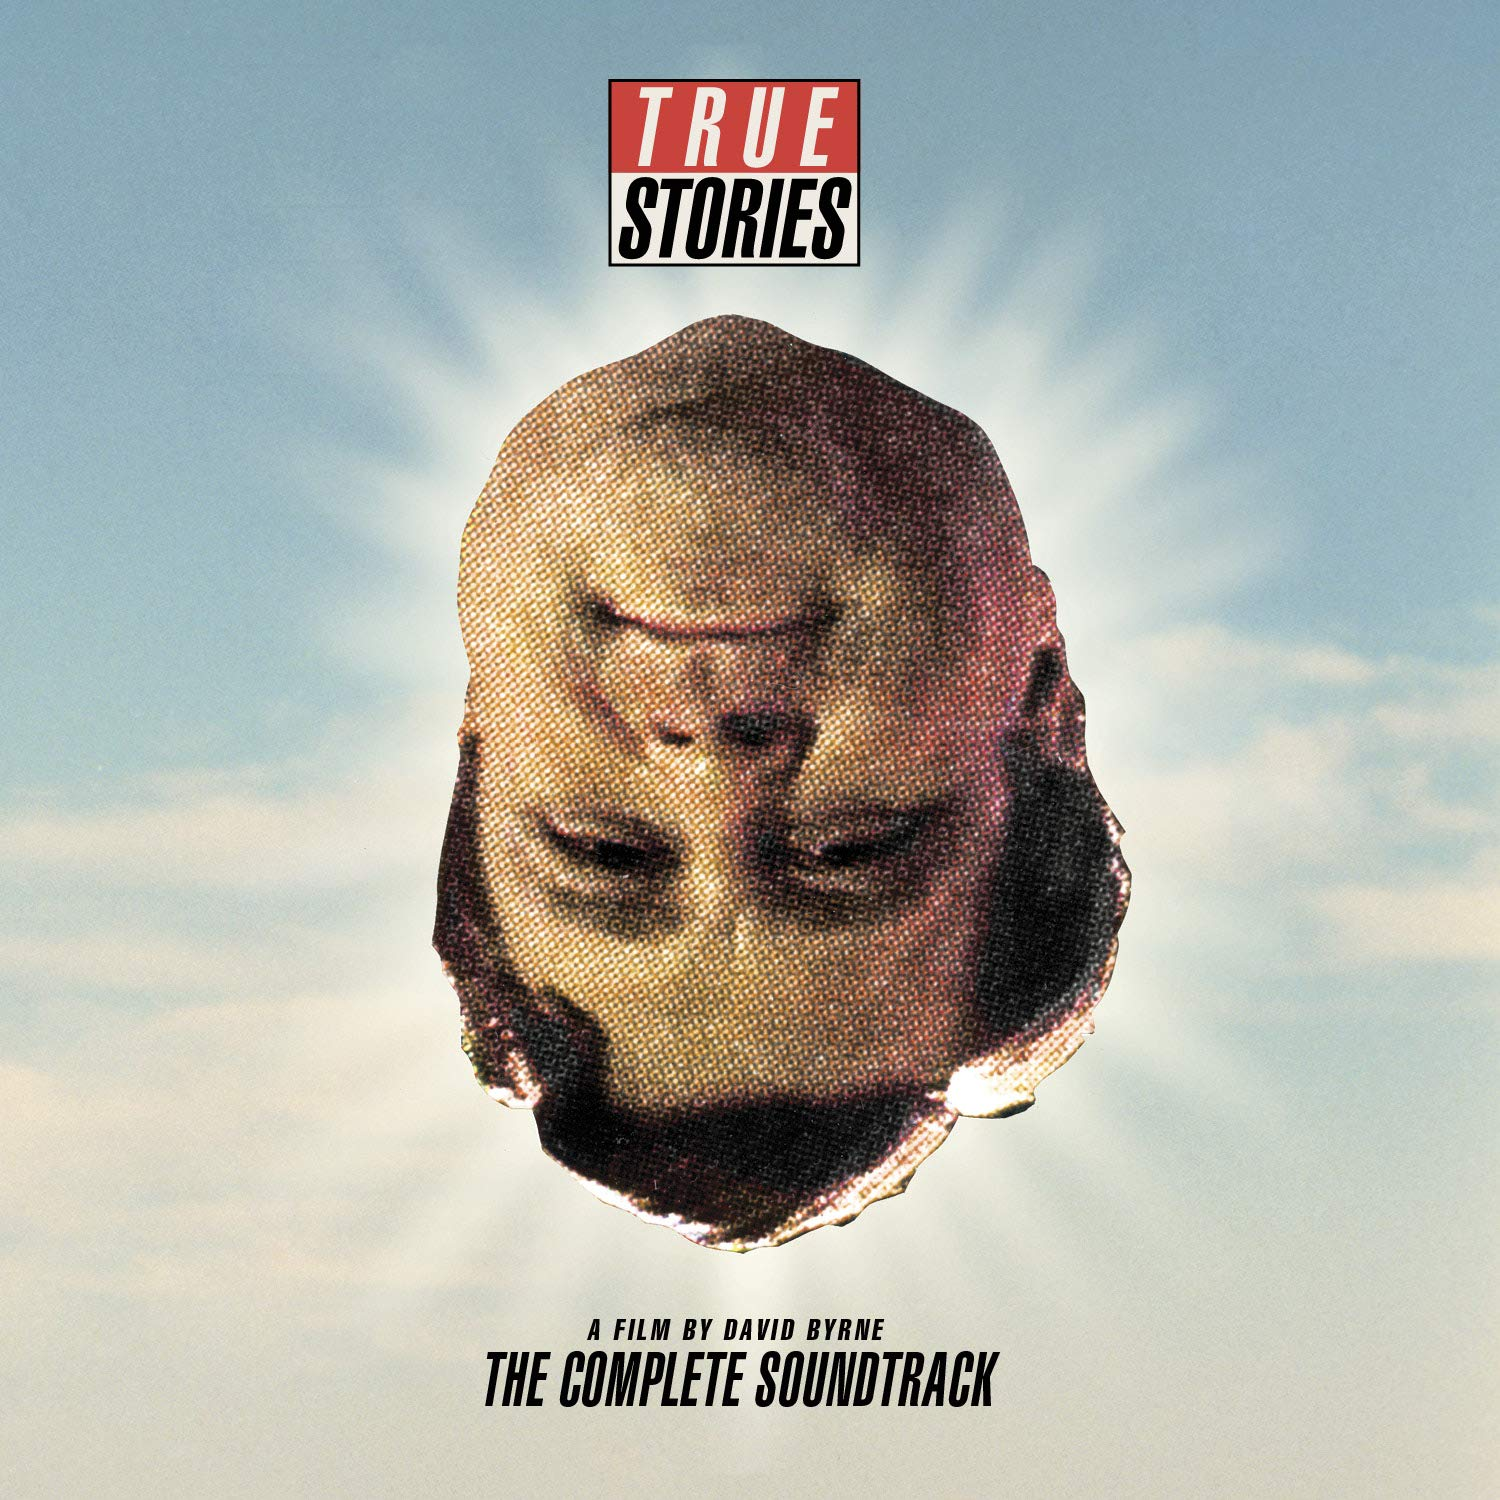 True Stories, A Film By David Byrne: The Complete Soundtrack [VINYL